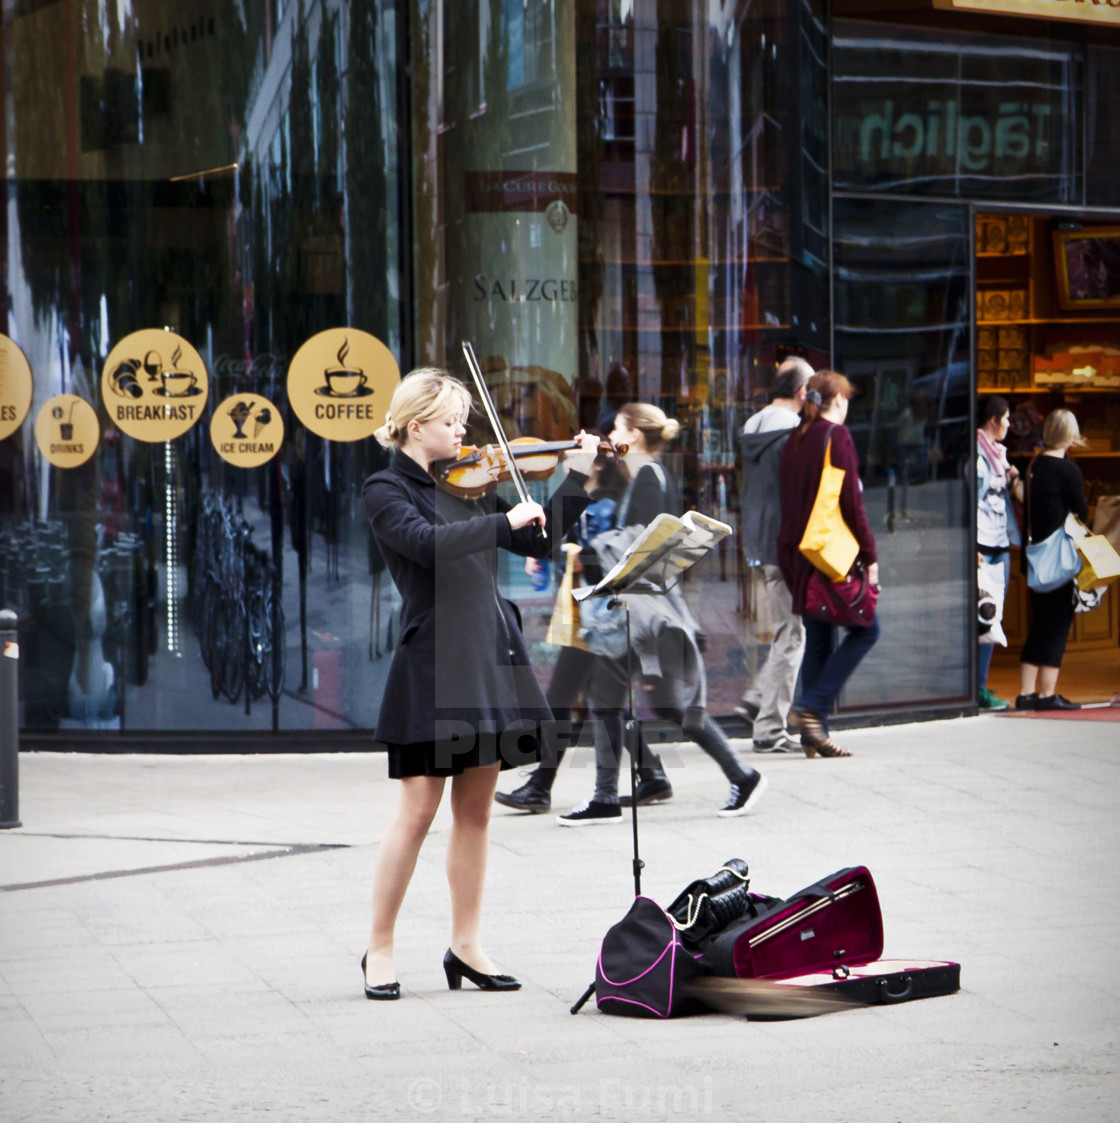 """Street music, young woman performs playing violin in Berlin, city center"" stock image"